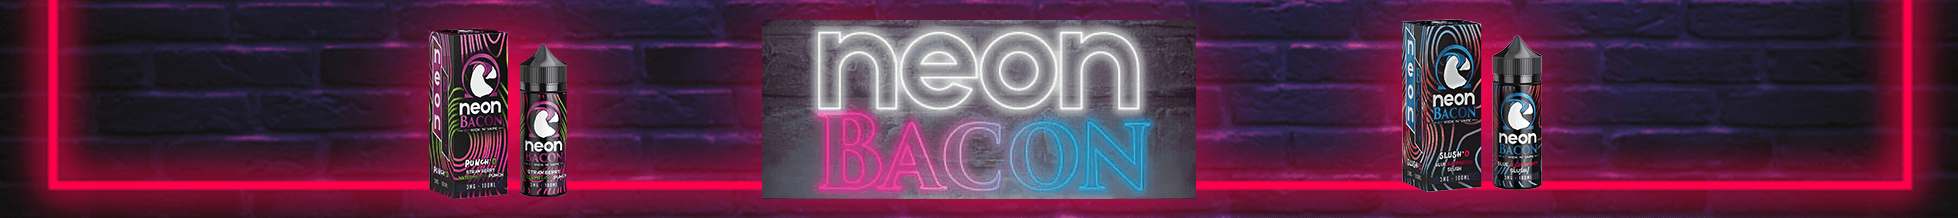 neon-bacon-category-banner.png